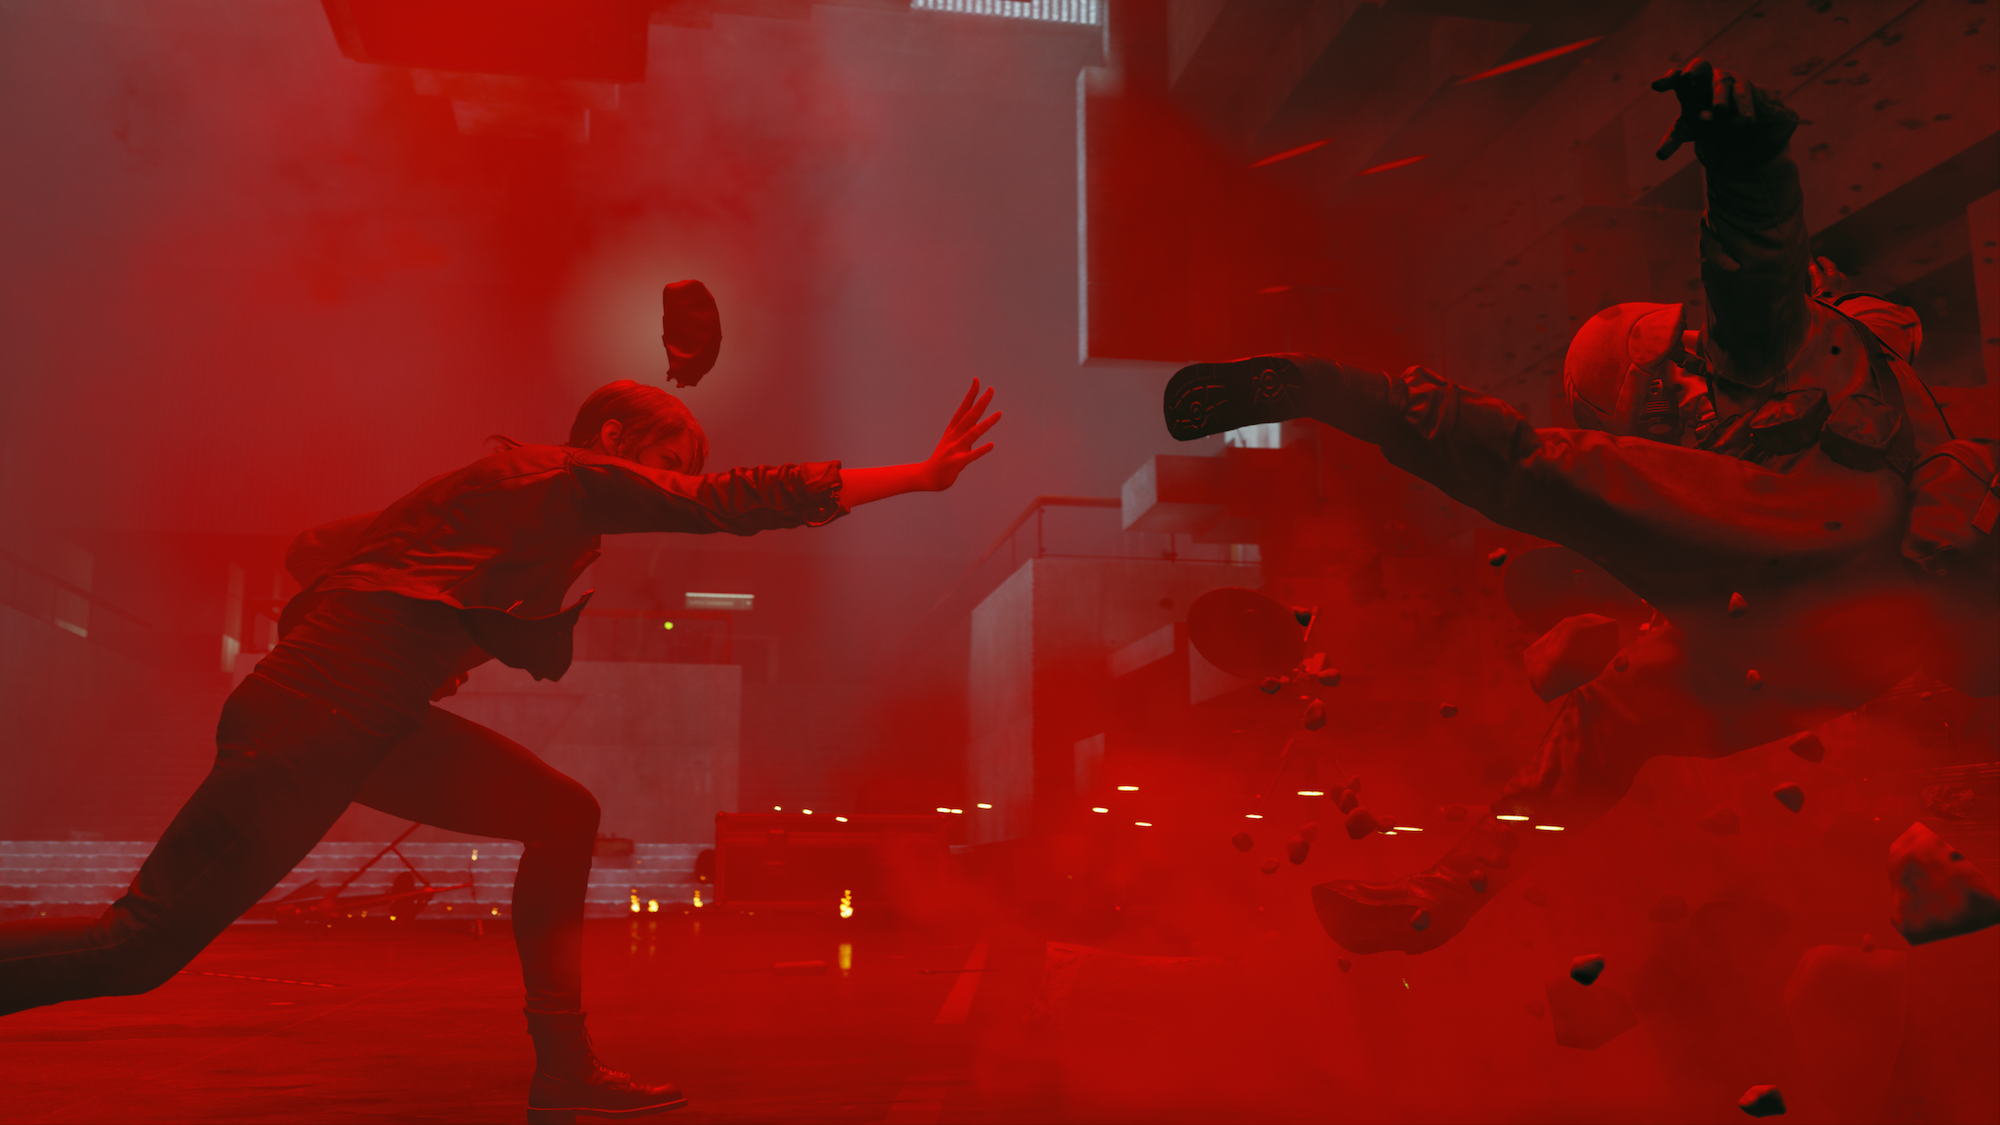 A woman in a red room slams an enemy soldier with psychic energy